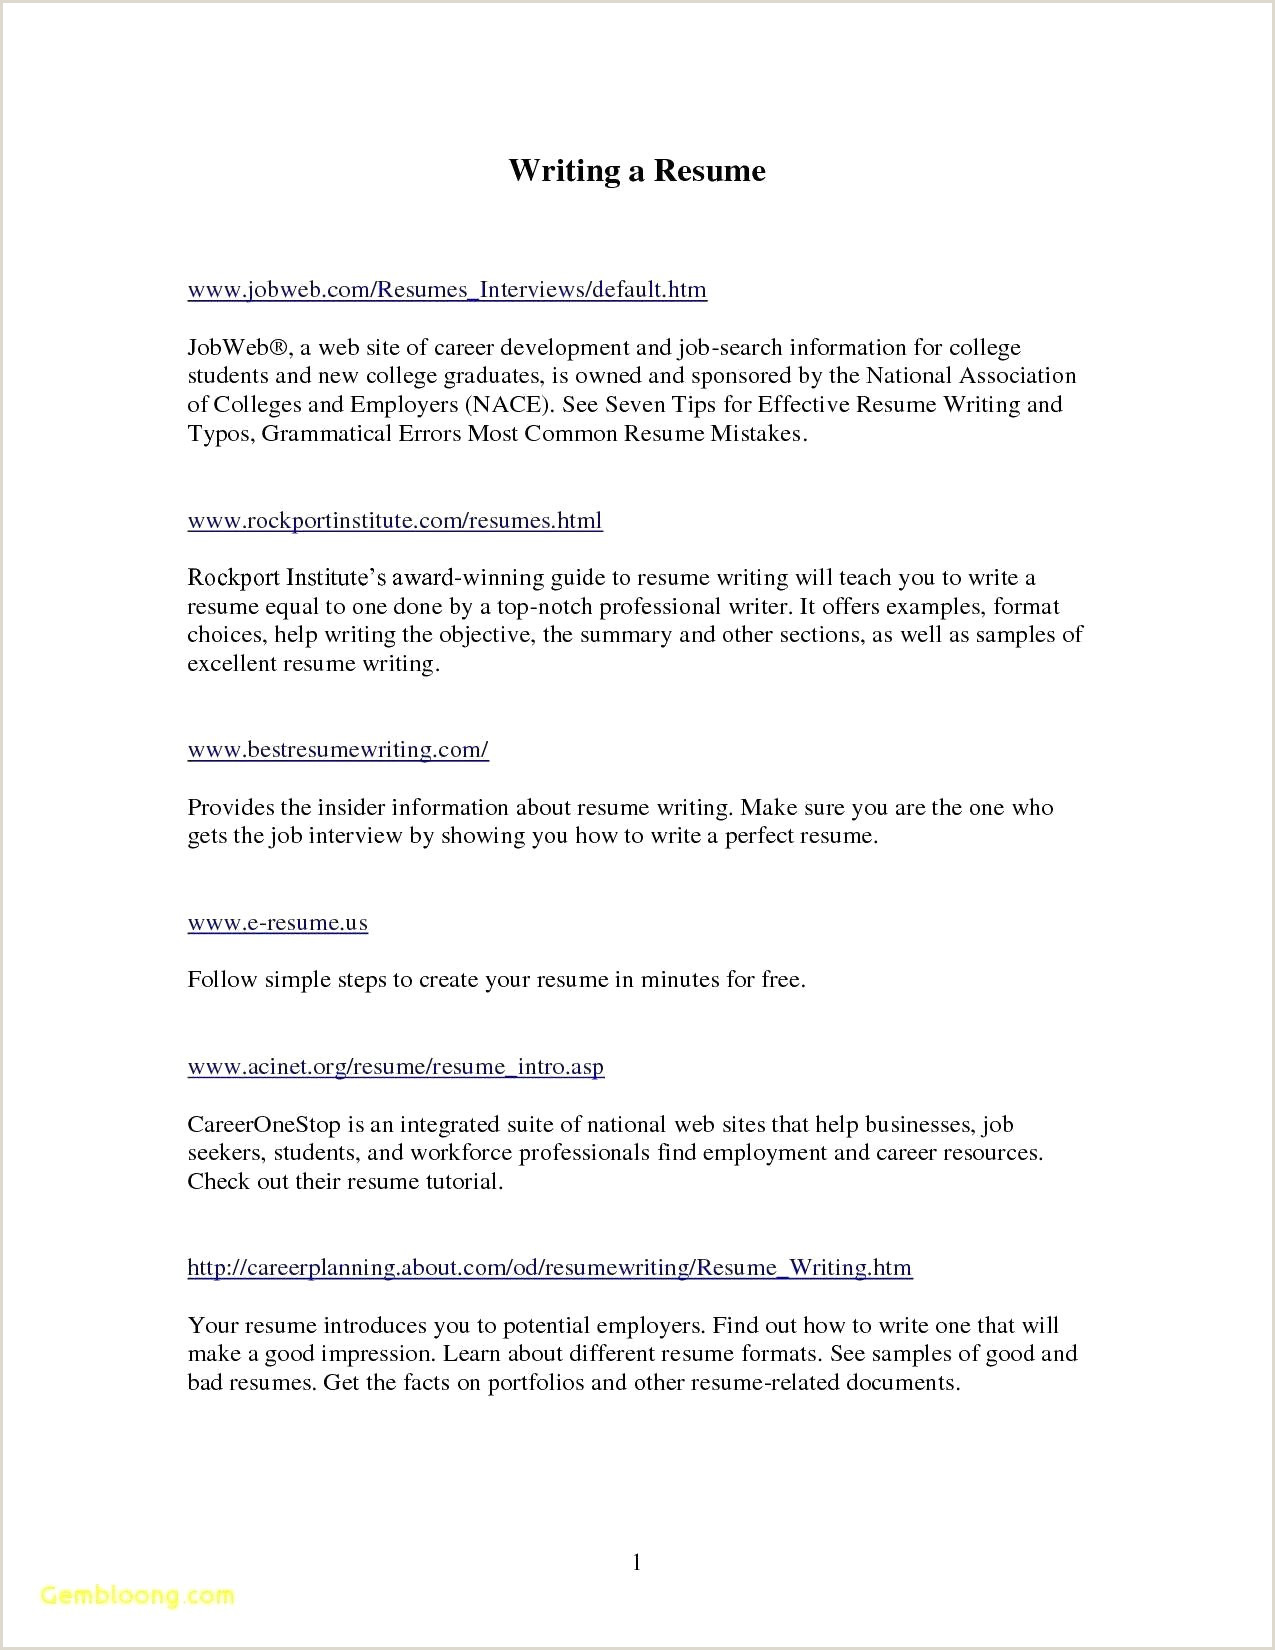 Human Resources Manager Resume Human Resource Manager Resume